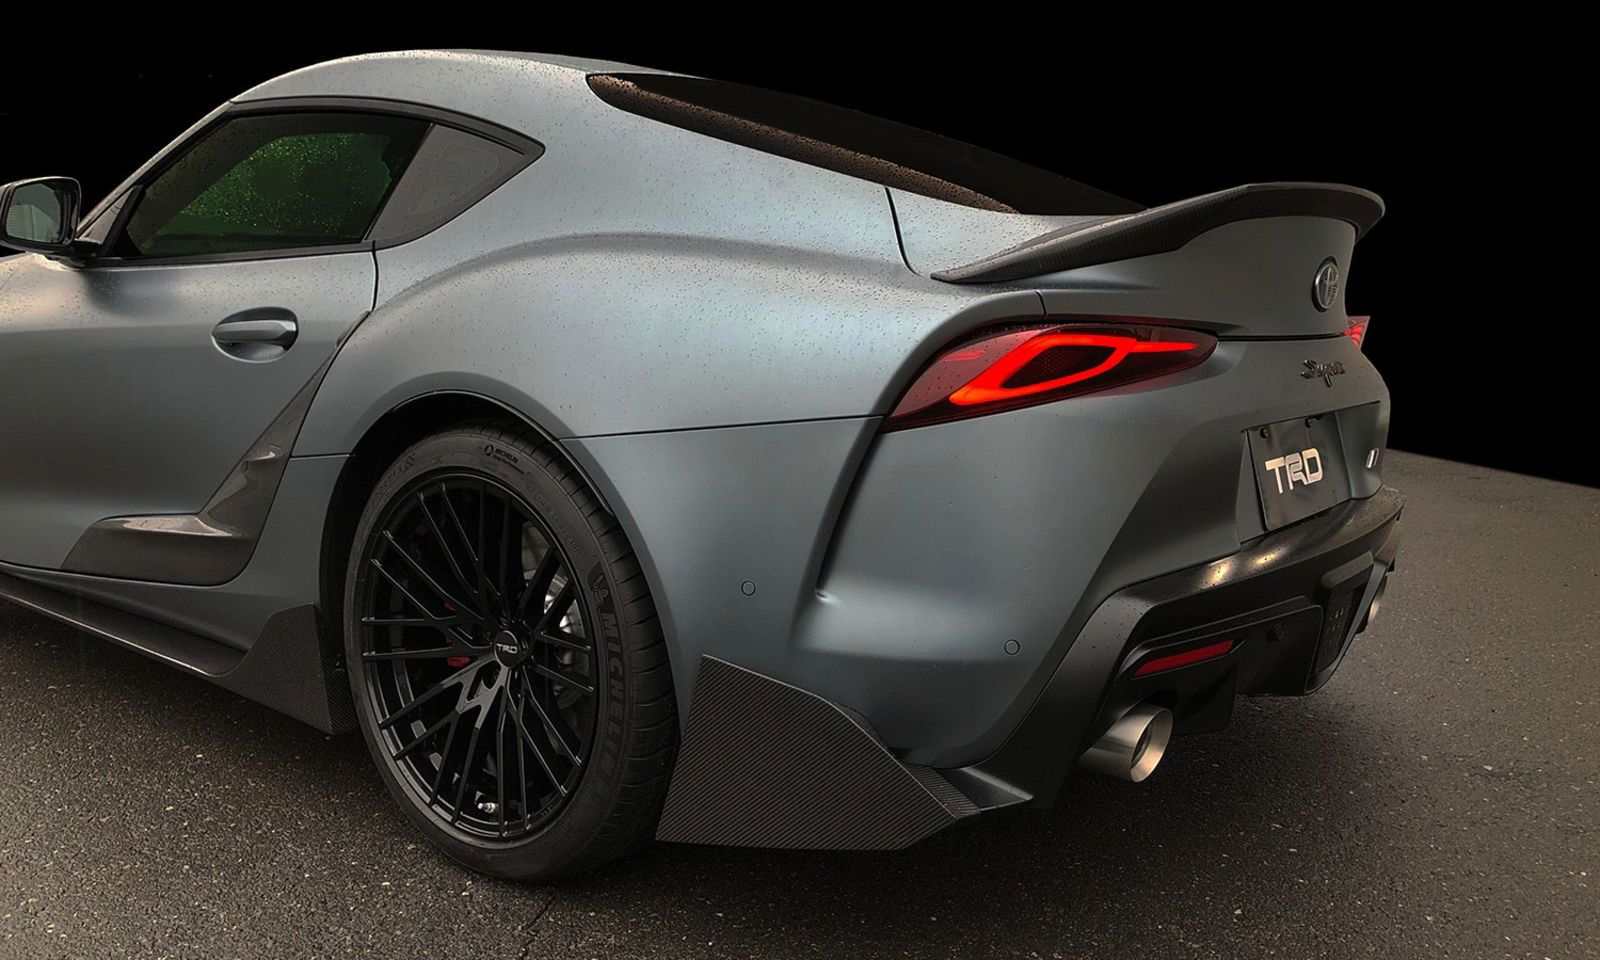 The Toyota Supra TRD Concept Shows Off a Spoiler and Whatever 'Carbon Fiber Garnish' Is